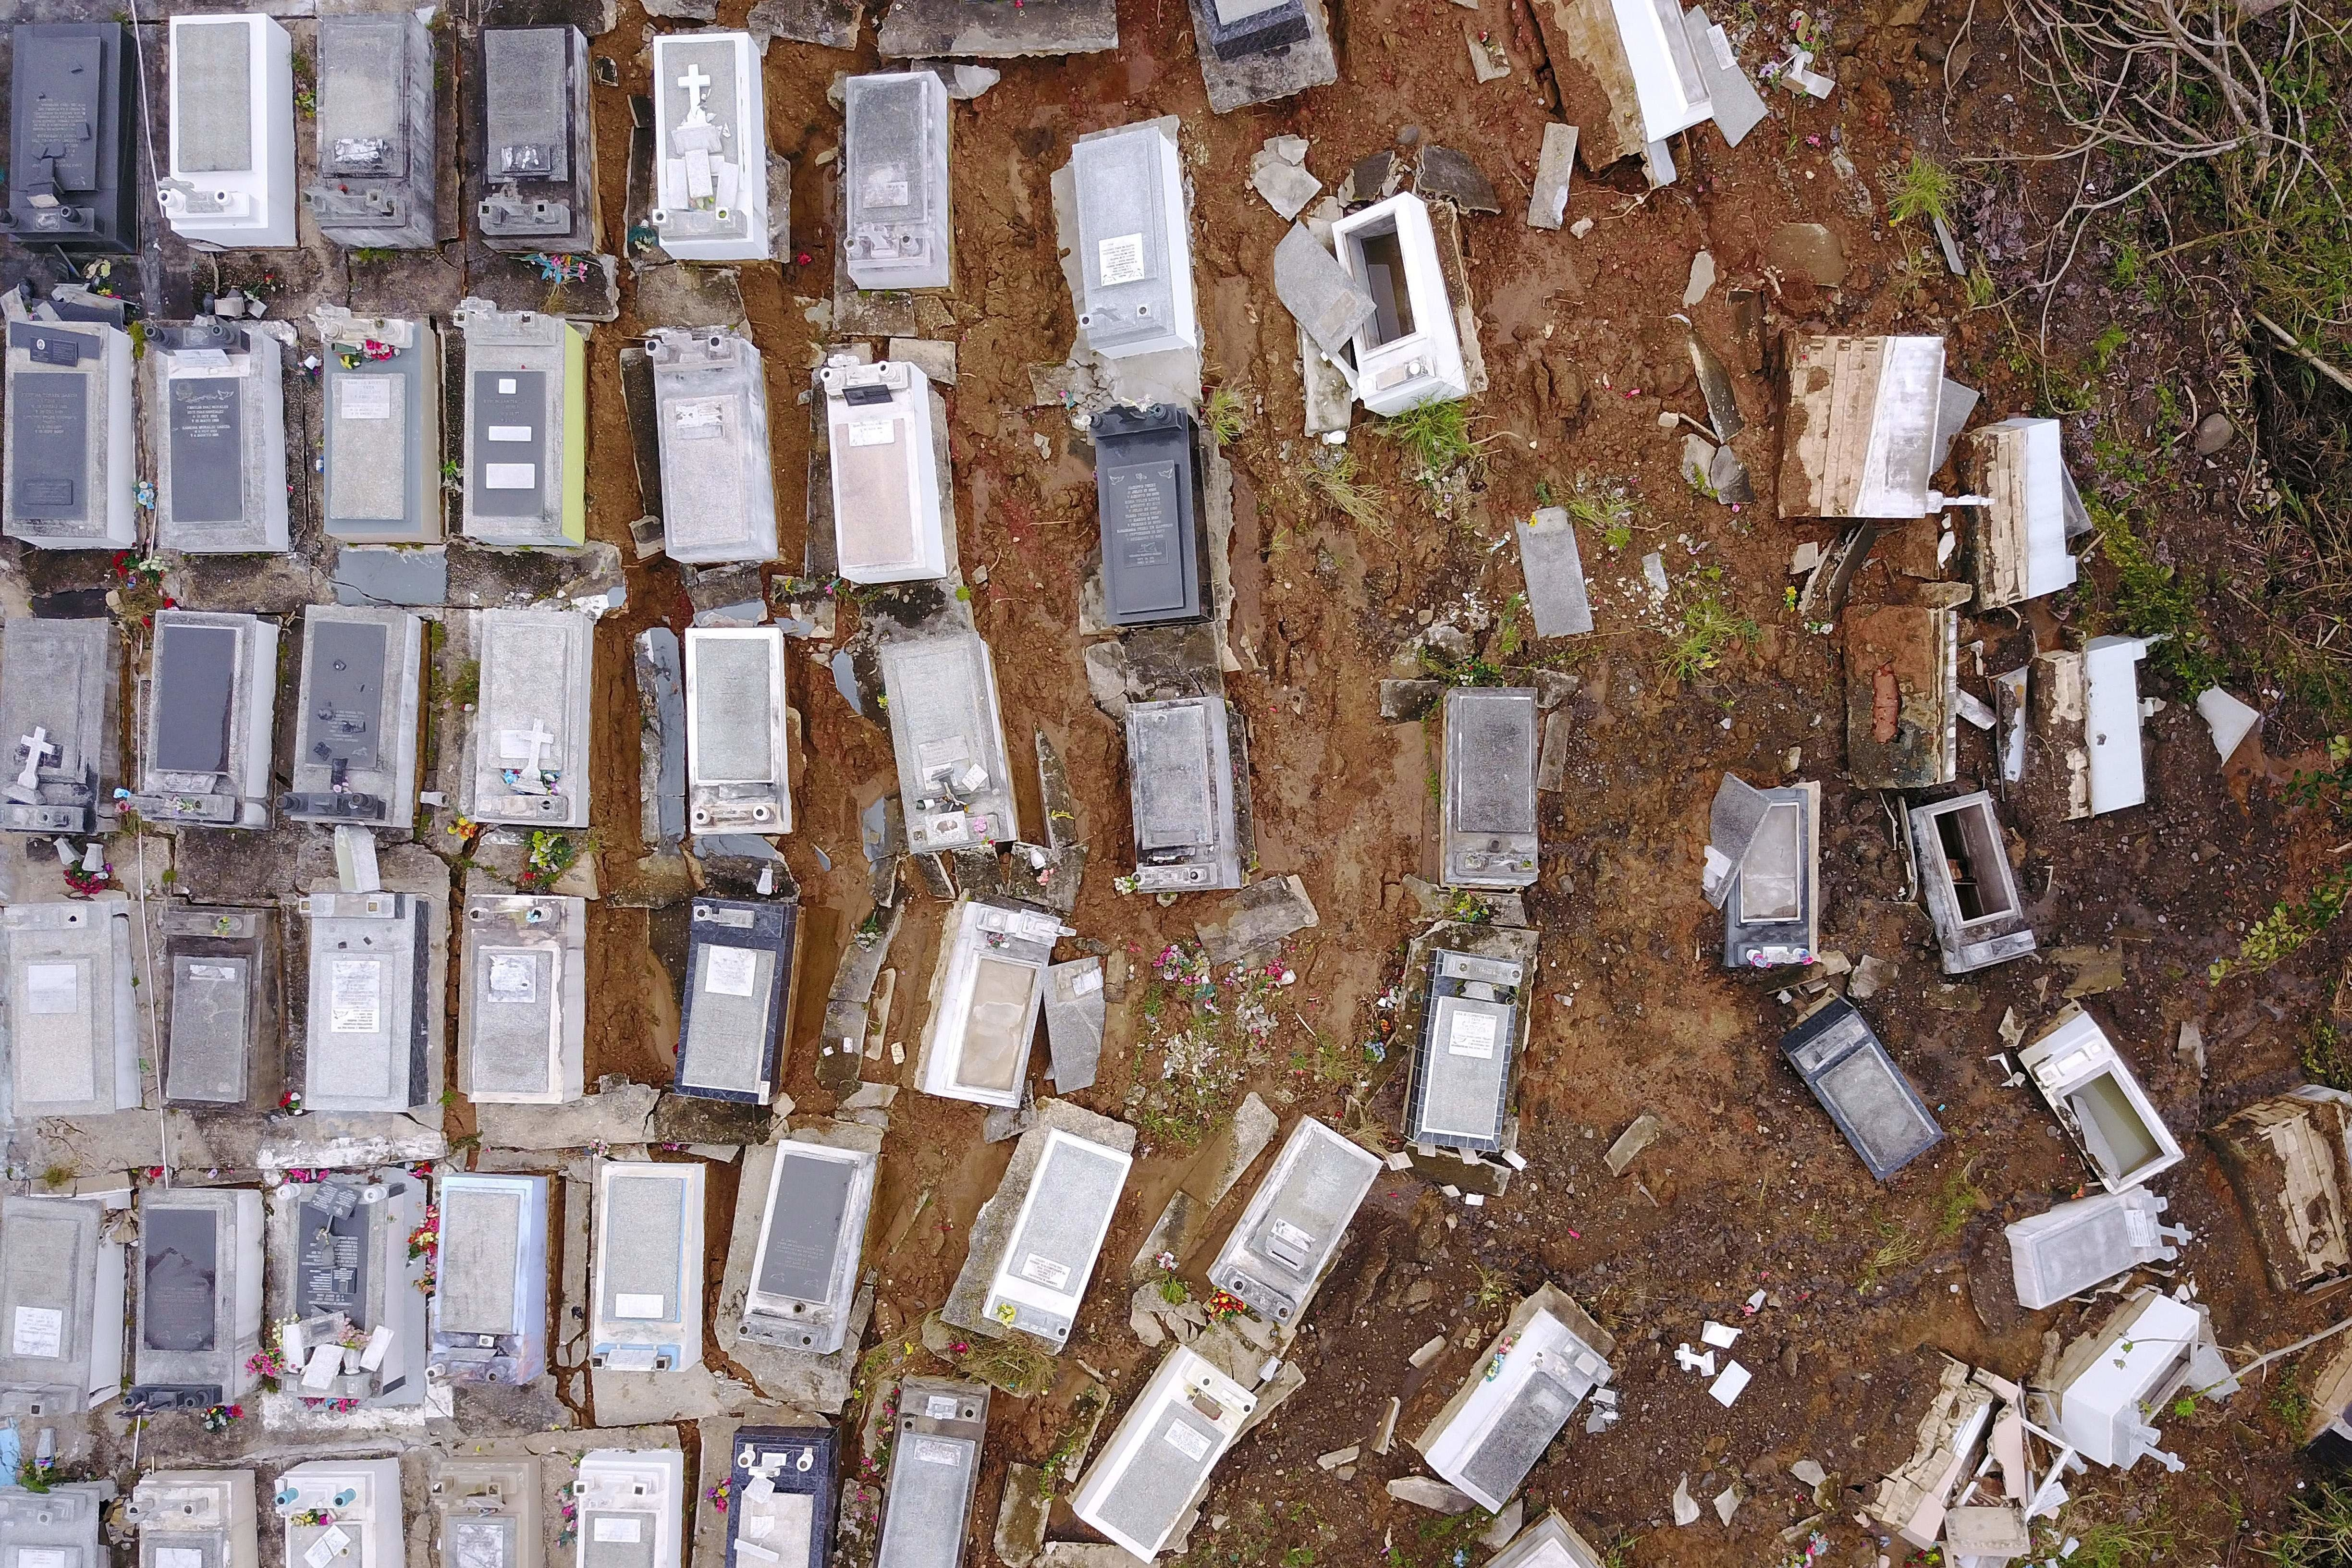 Coffins were washed downhill from the Lares Municipal Cemetery by a landslide in the wake of Hurricane Maria in Puerto R